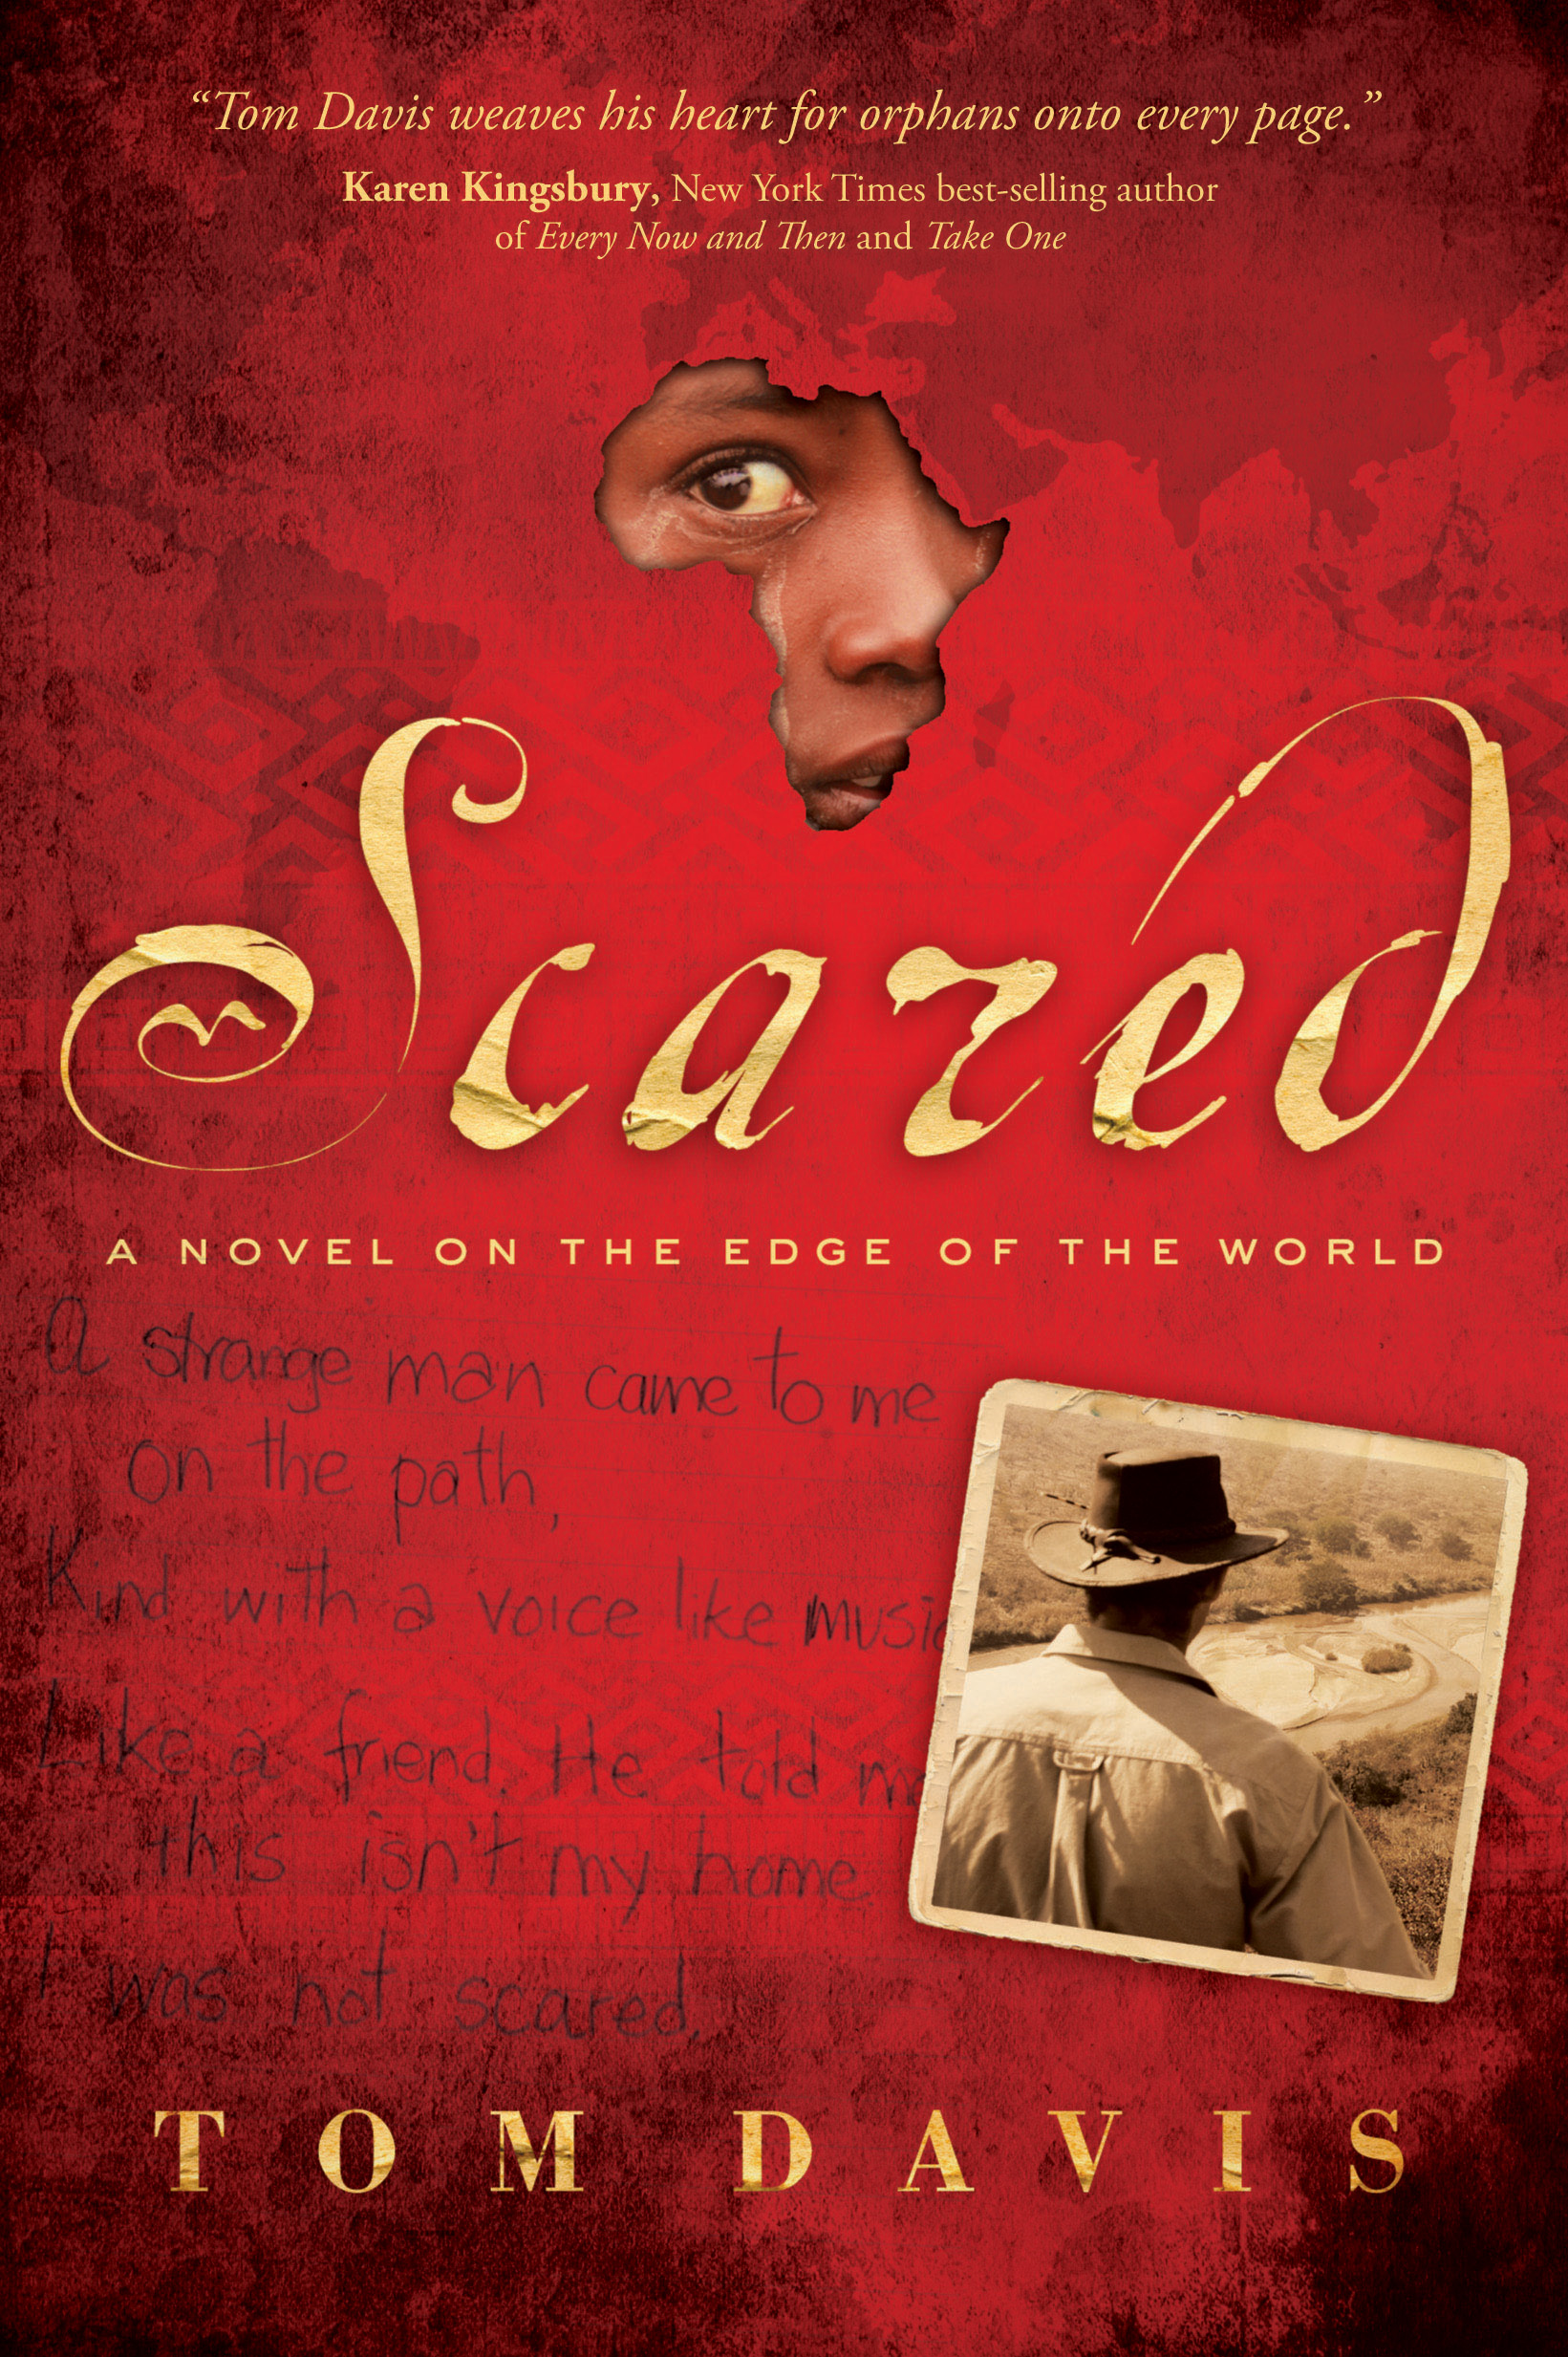 Scared: A Novel on the Edge of the World By: Tom Davis